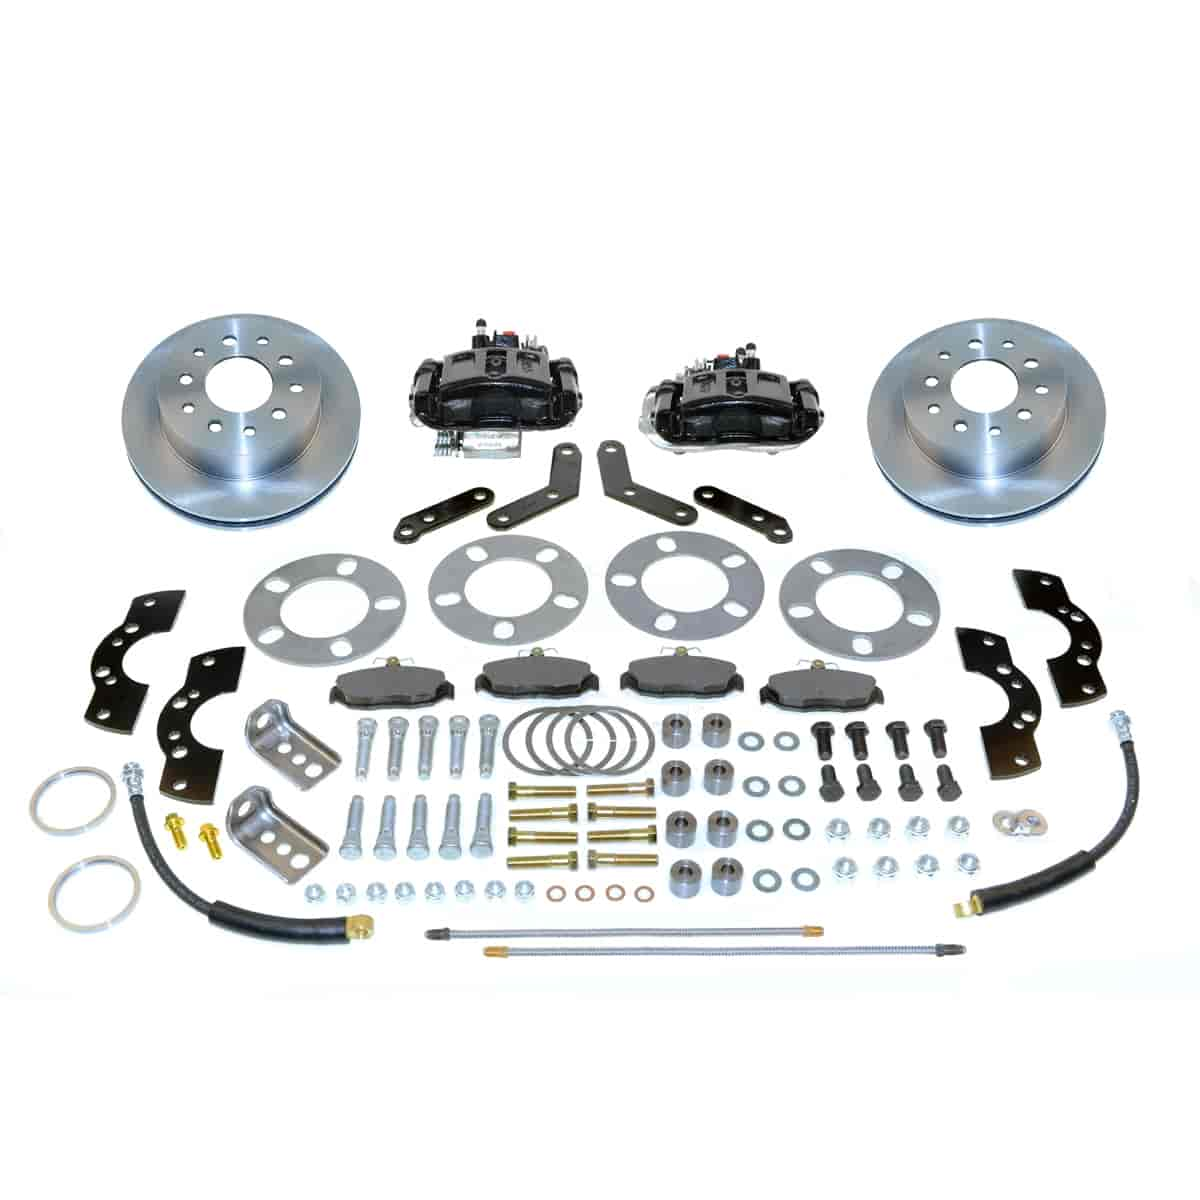 SSBC A111-2BK - Stainless Steel Brakes Single Piston Rear Disc Brake Conversion Kit